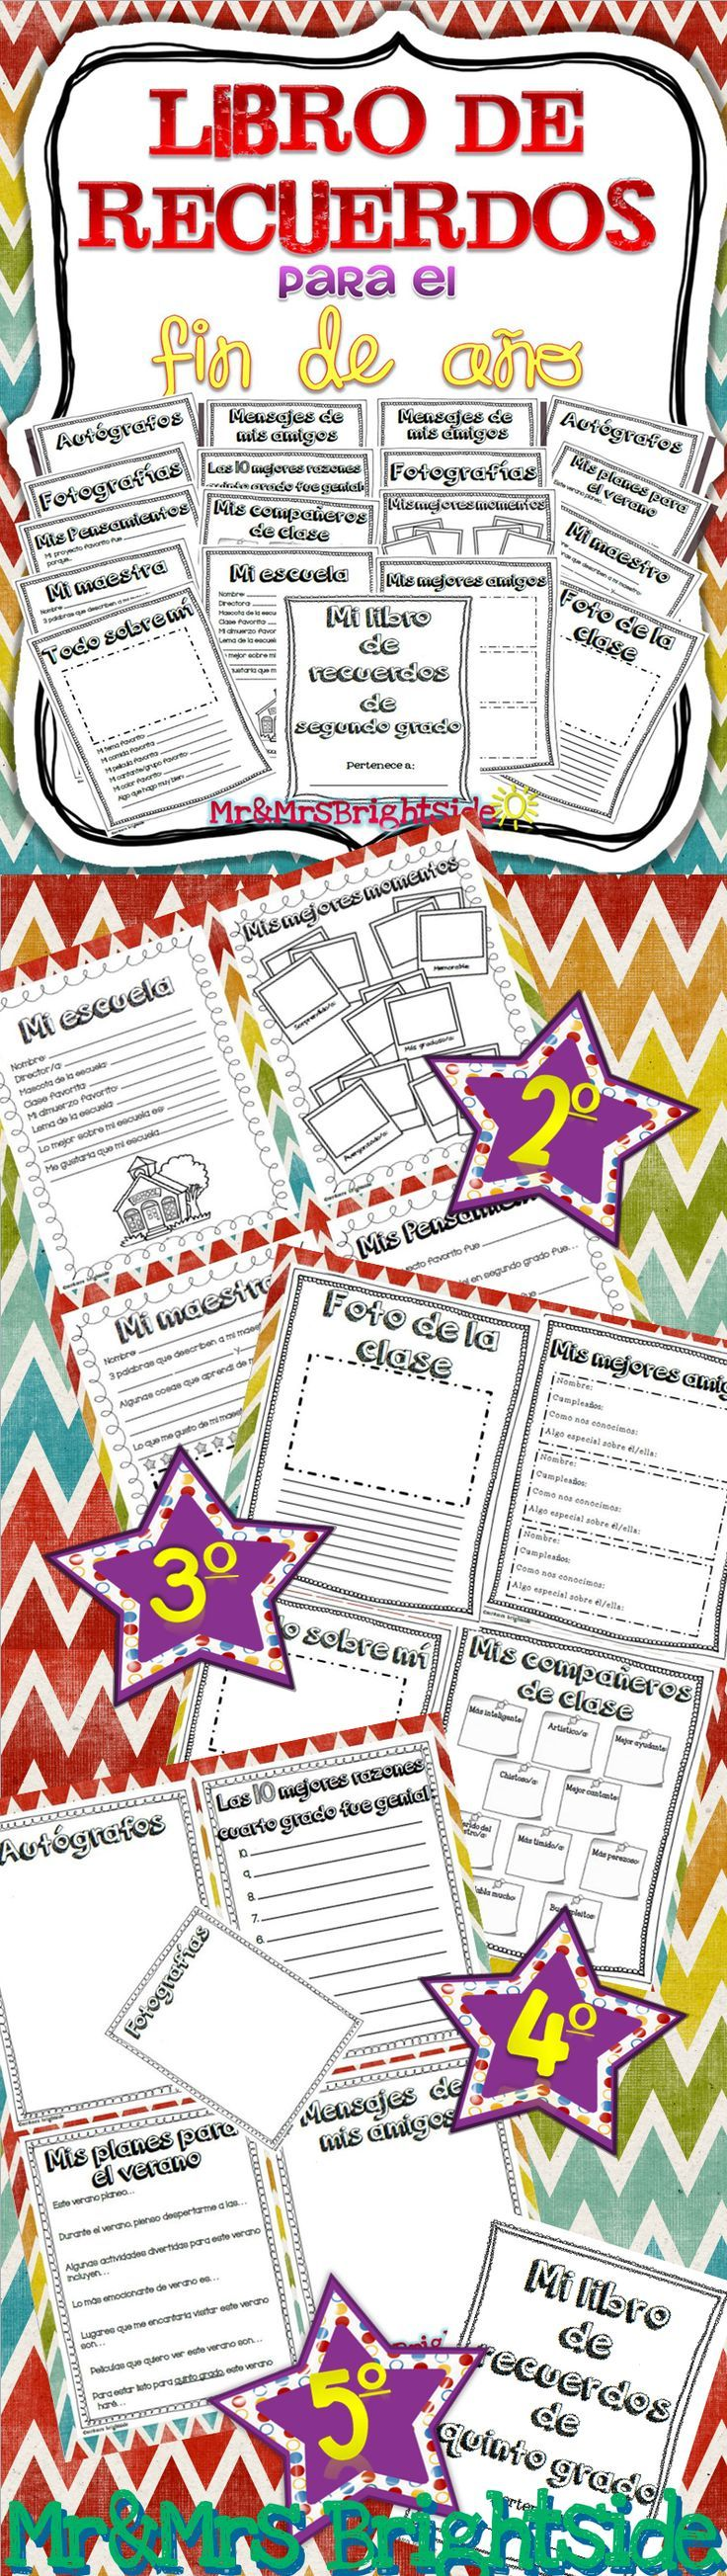 Libro de recuerdos para el fin de año: This is a 18 page memory book for the end of the year in Spanish. This memory book encourages students to write about their experiences in 2nd grade (3rd, 4th, and 5th also available). It's a great keepsake that students will remember throughout the years! Good for Spanish dual language and bilingual classes.